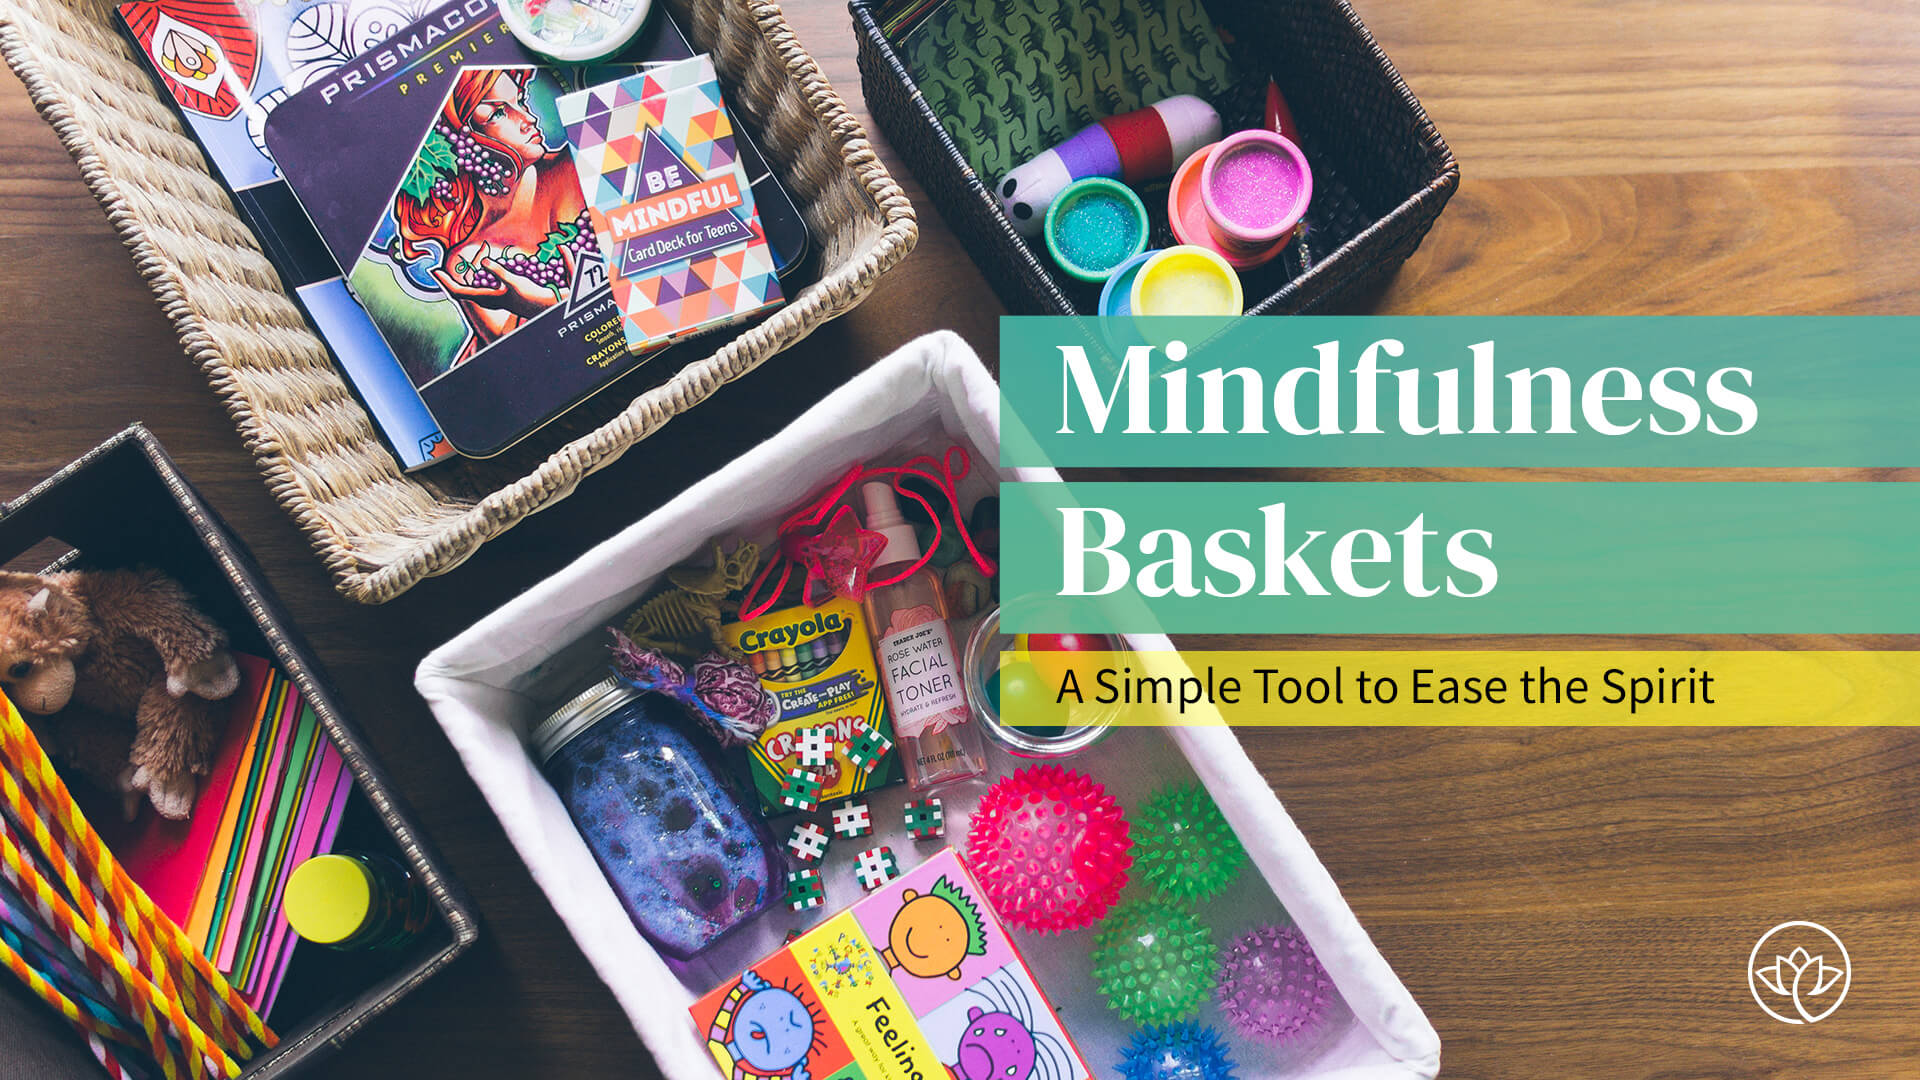 Mindfulness Baskets Feature Image